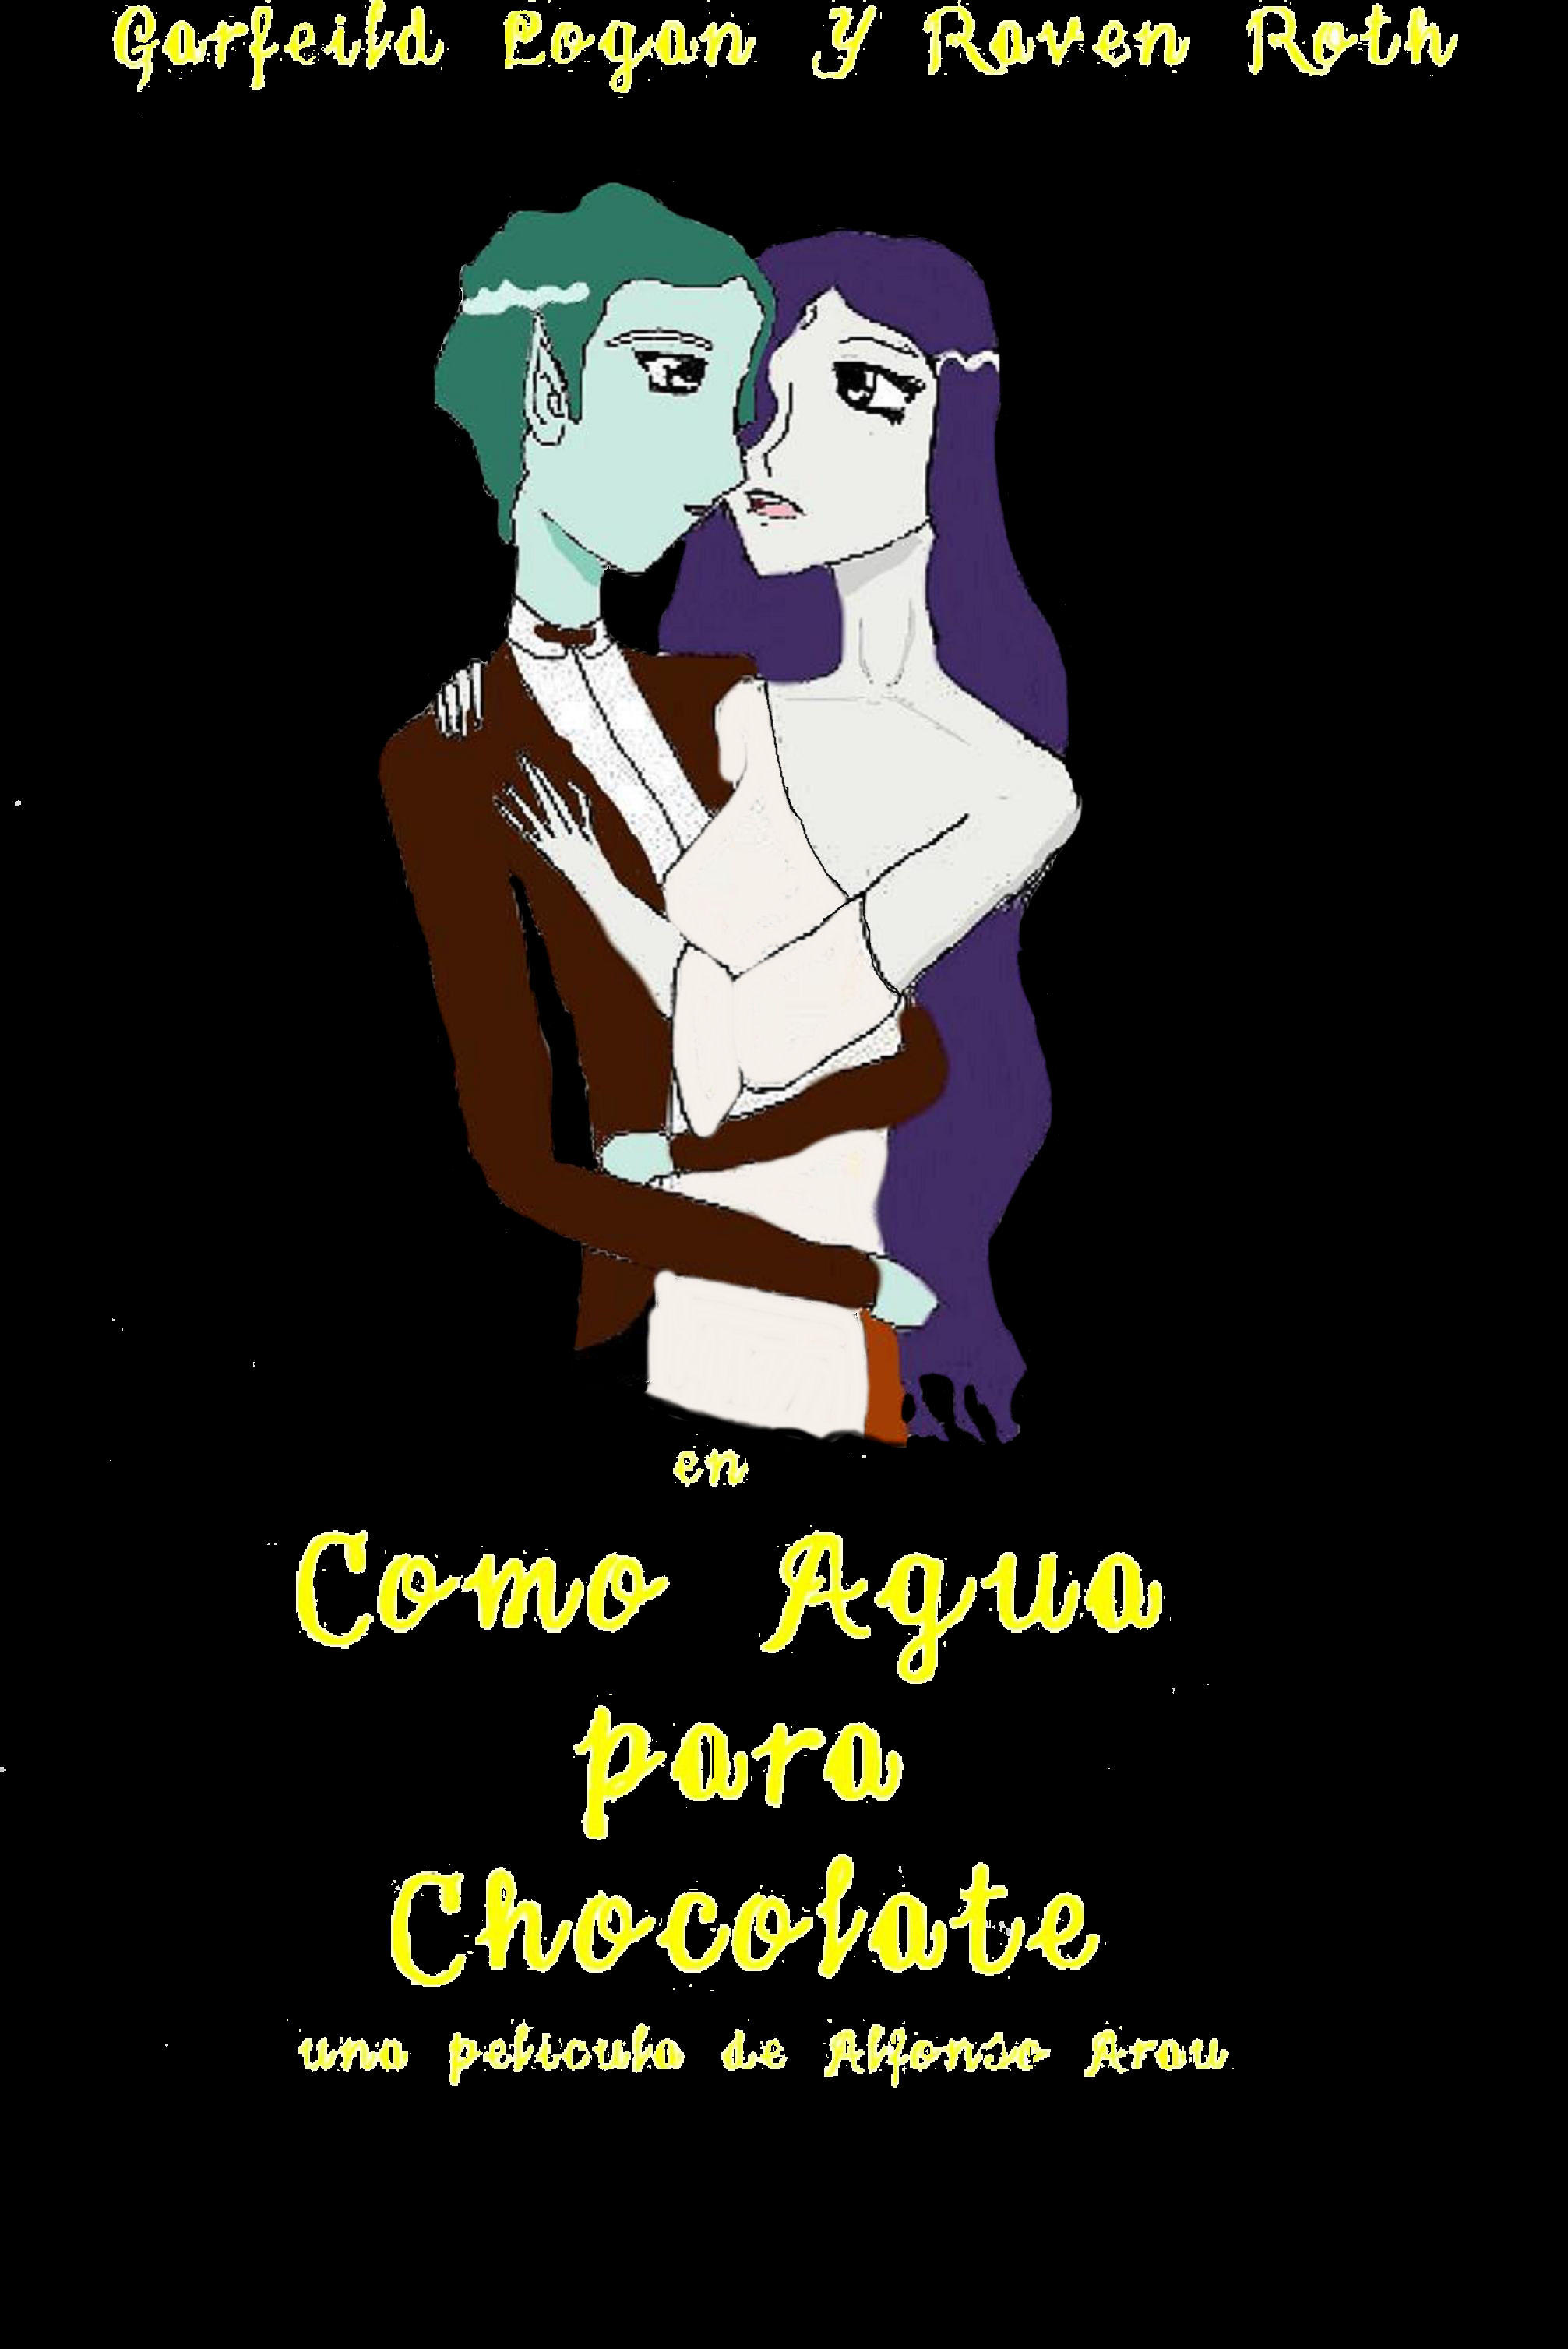 Like Water for Chocolate by Imavampire on DeviantArt